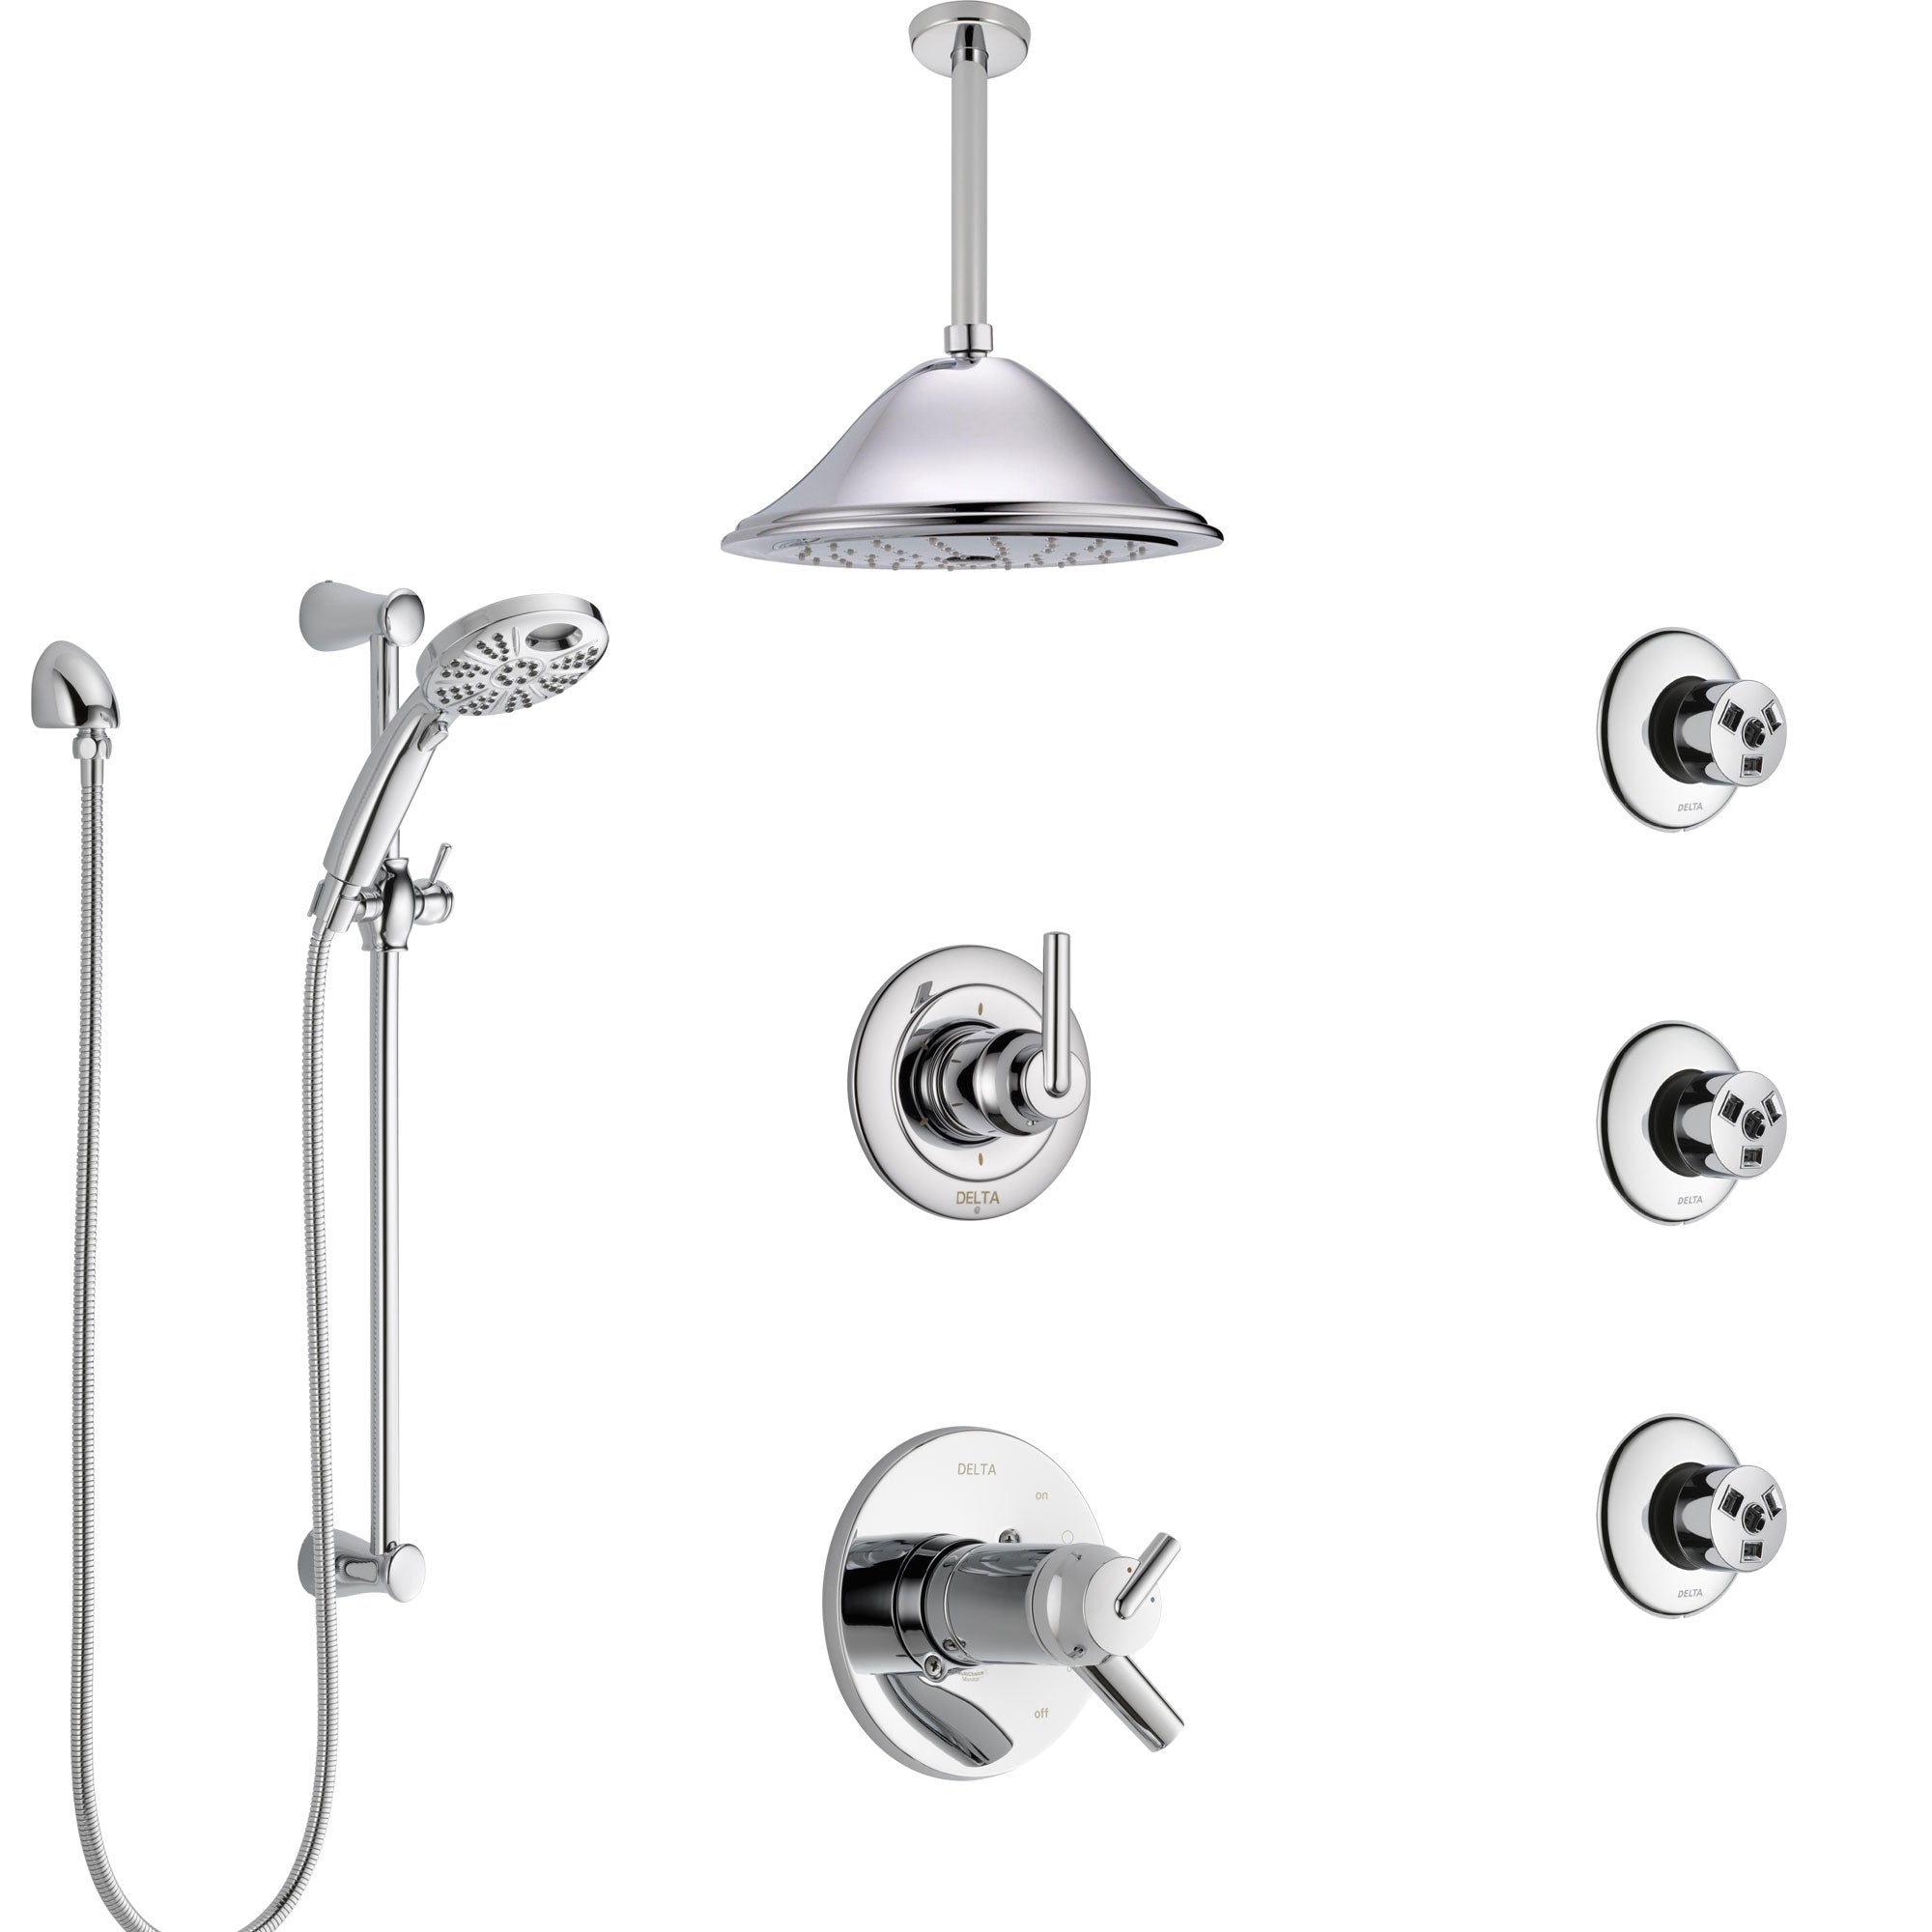 Delta Trinsic Chrome Shower System with Dual Thermostatic Control, Diverter, Ceiling Mount Showerhead, 3 Body Sprays, and Temp2O Hand Shower SS17T5915